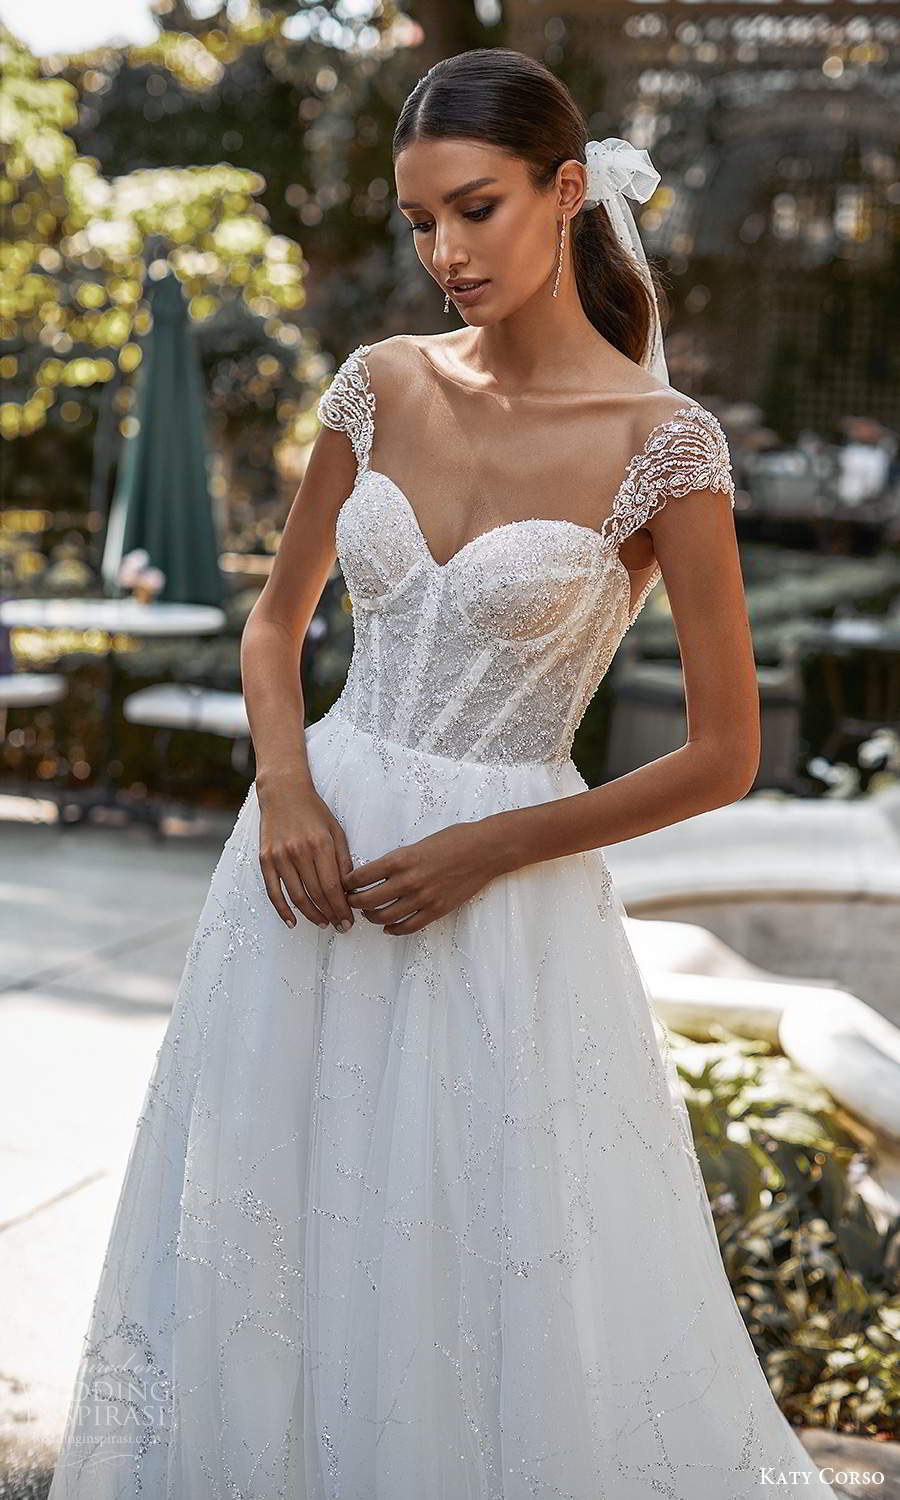 katy corso 2021 bridal cap sleeves sweeetheart neckline fully embellished a line ball gown wedding dress chapel train (11) zv